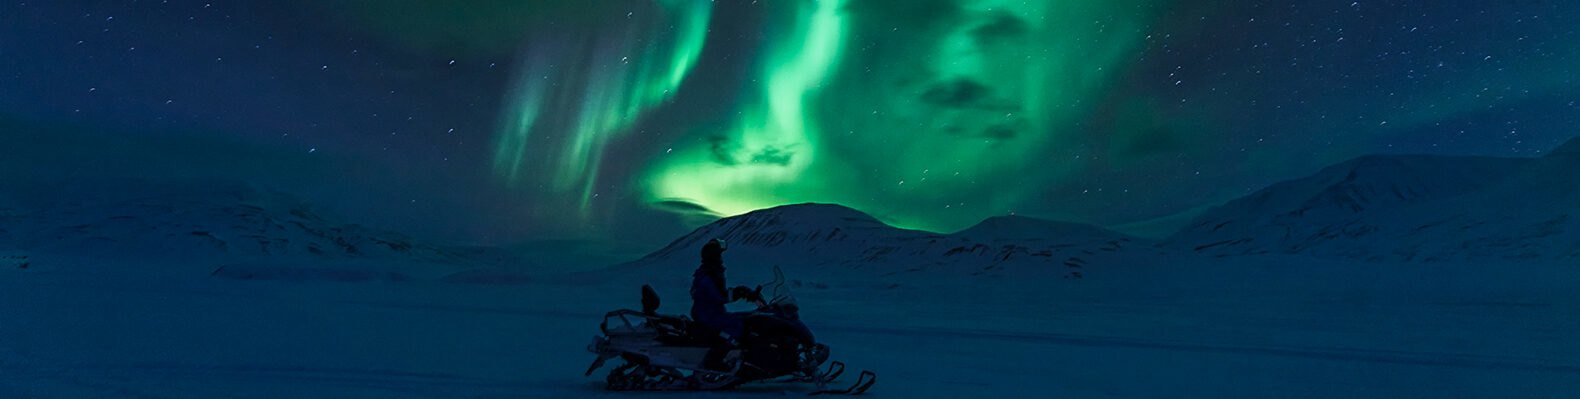 Person on electric snowmobile looking at northern lights